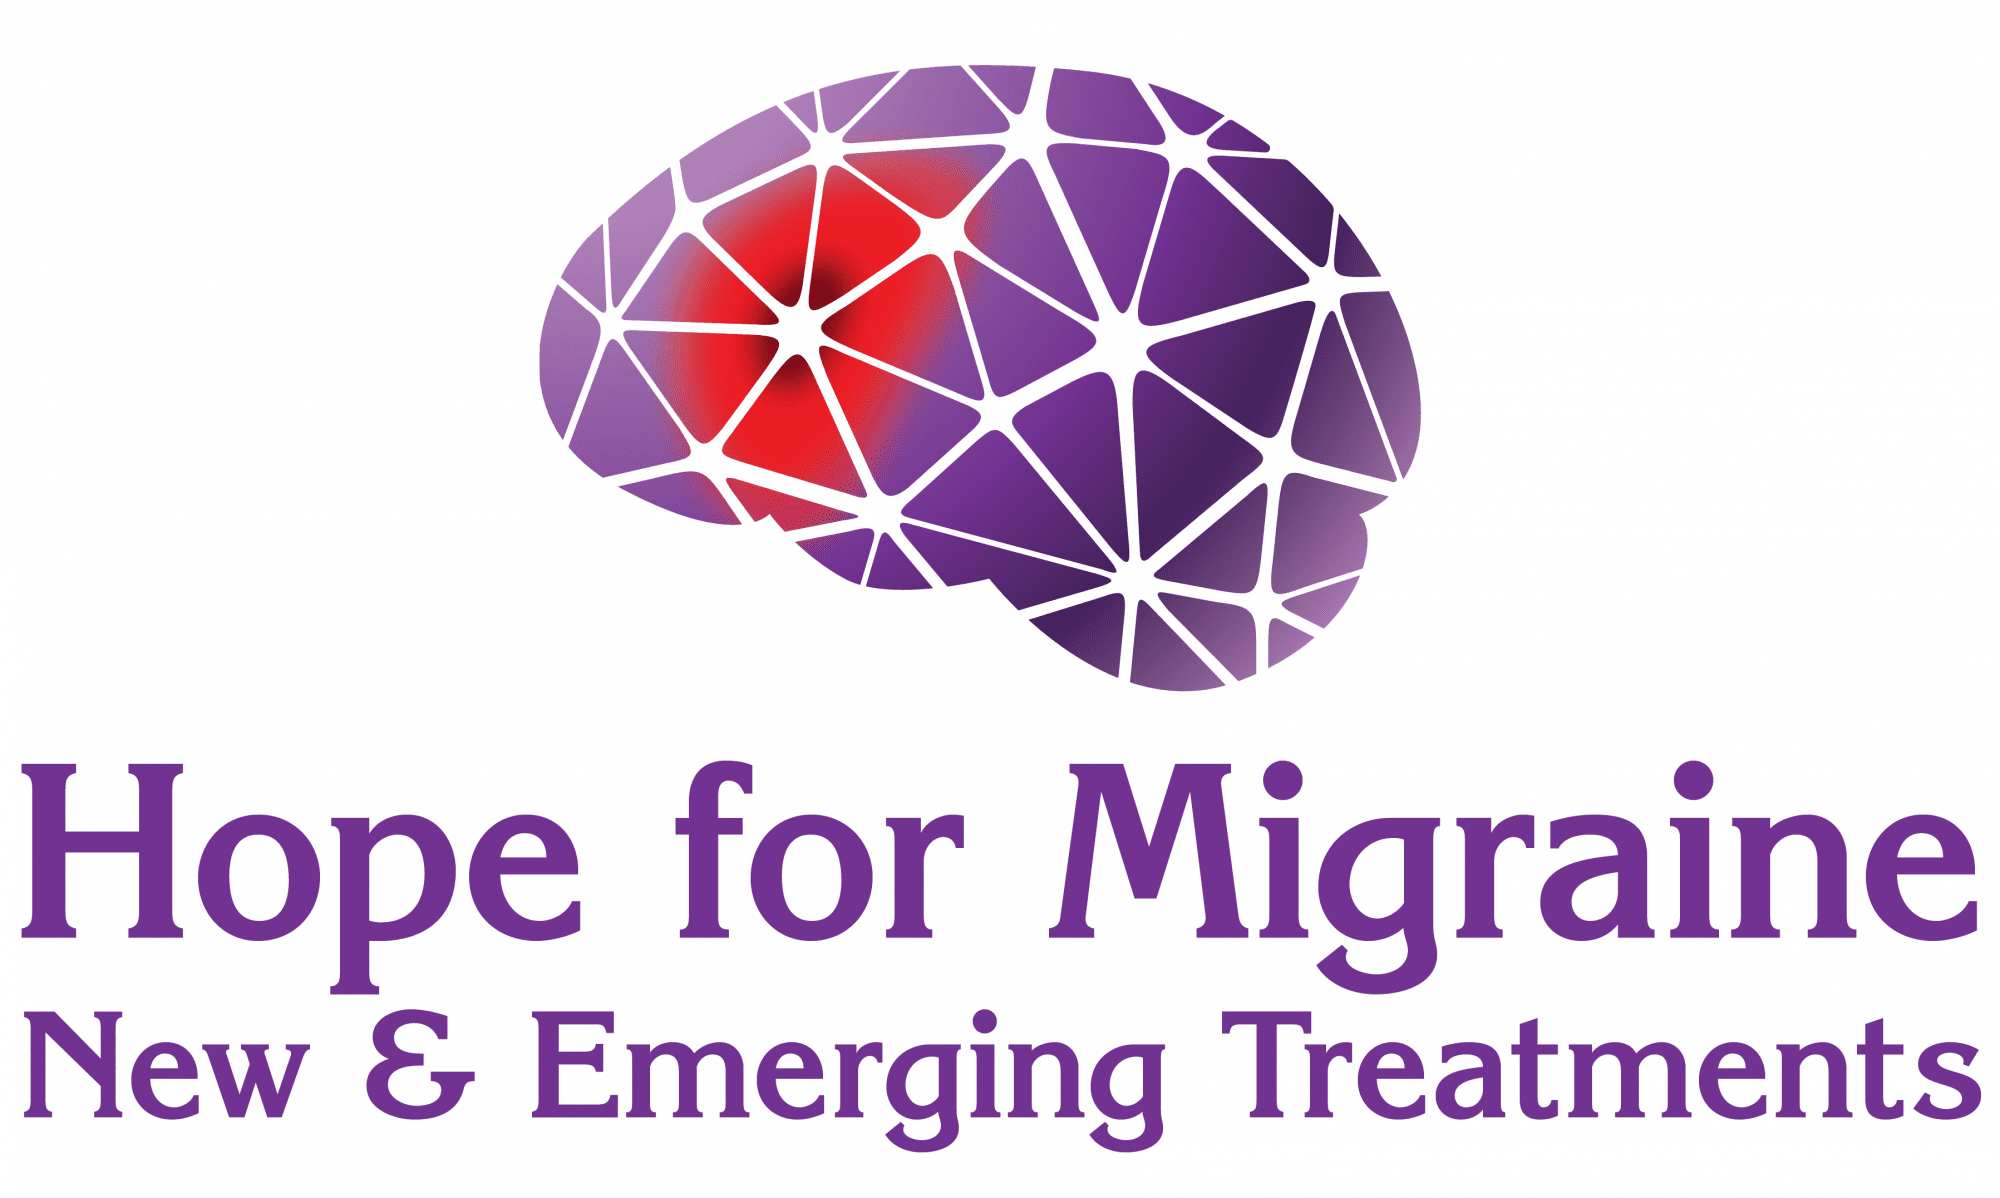 Hope for Migraine - New and Emerging Treatments